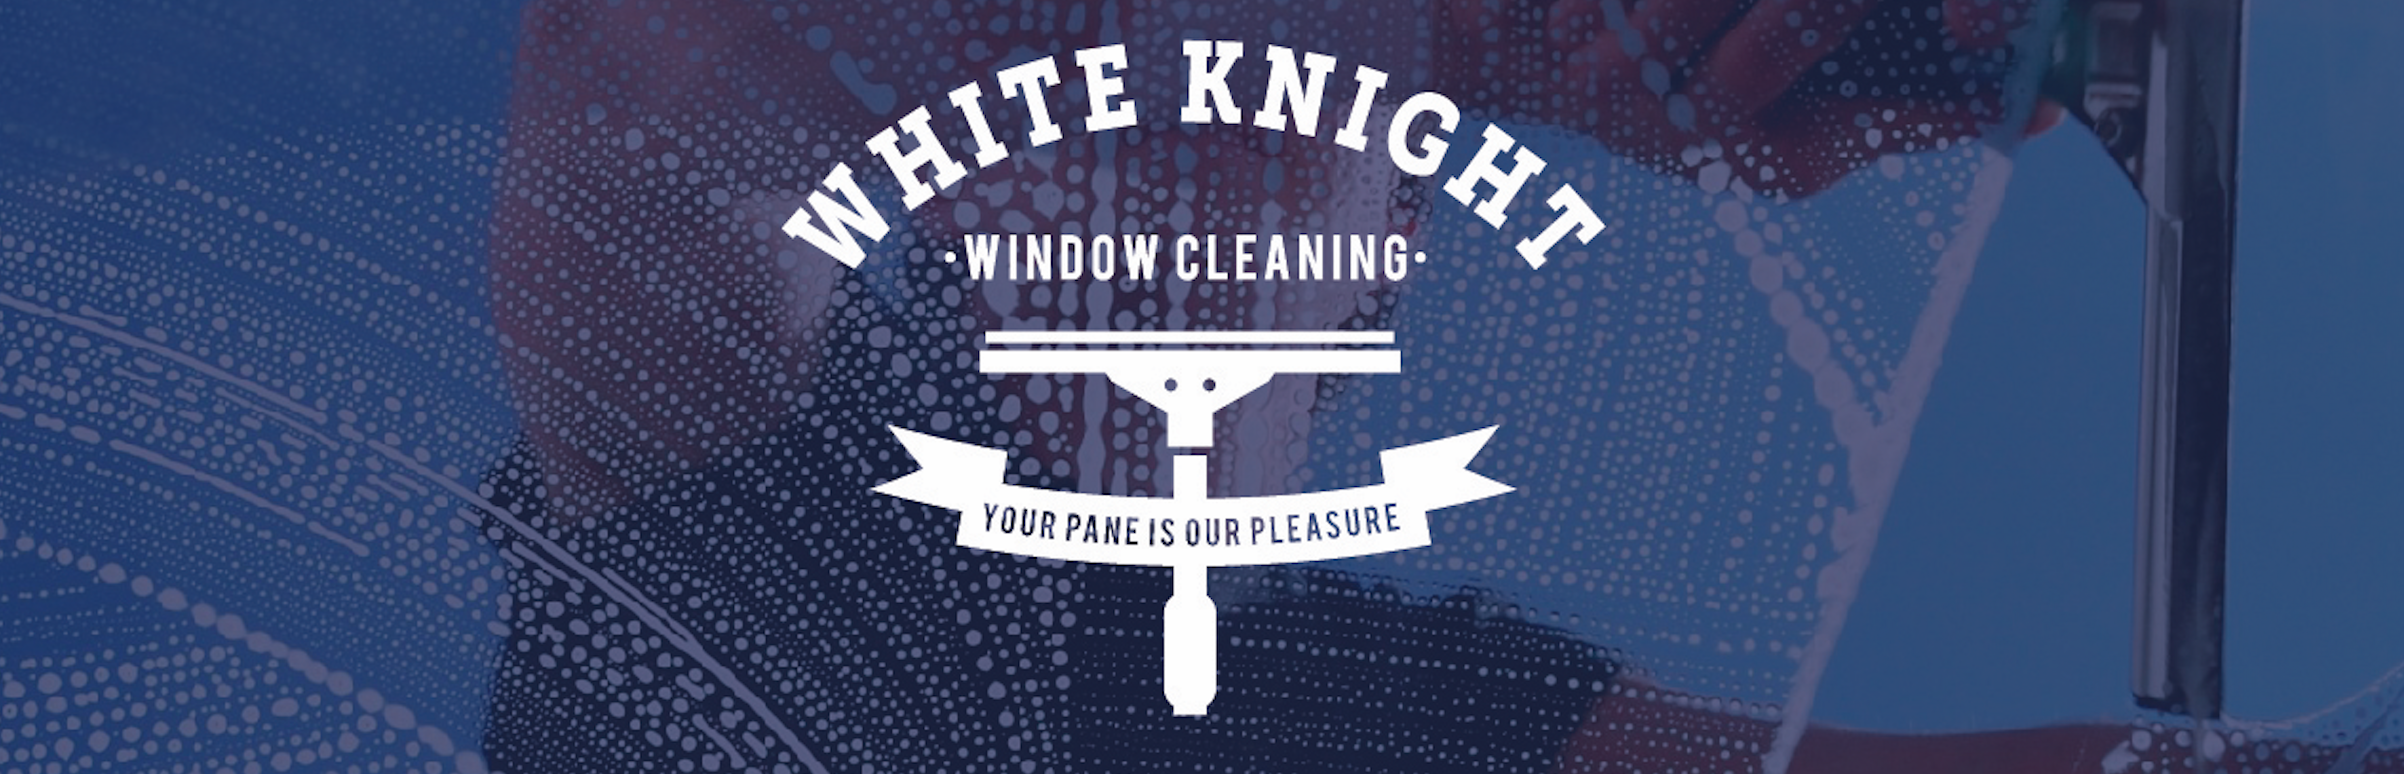 White Knight Window Cleaning:Window Cleaners.png